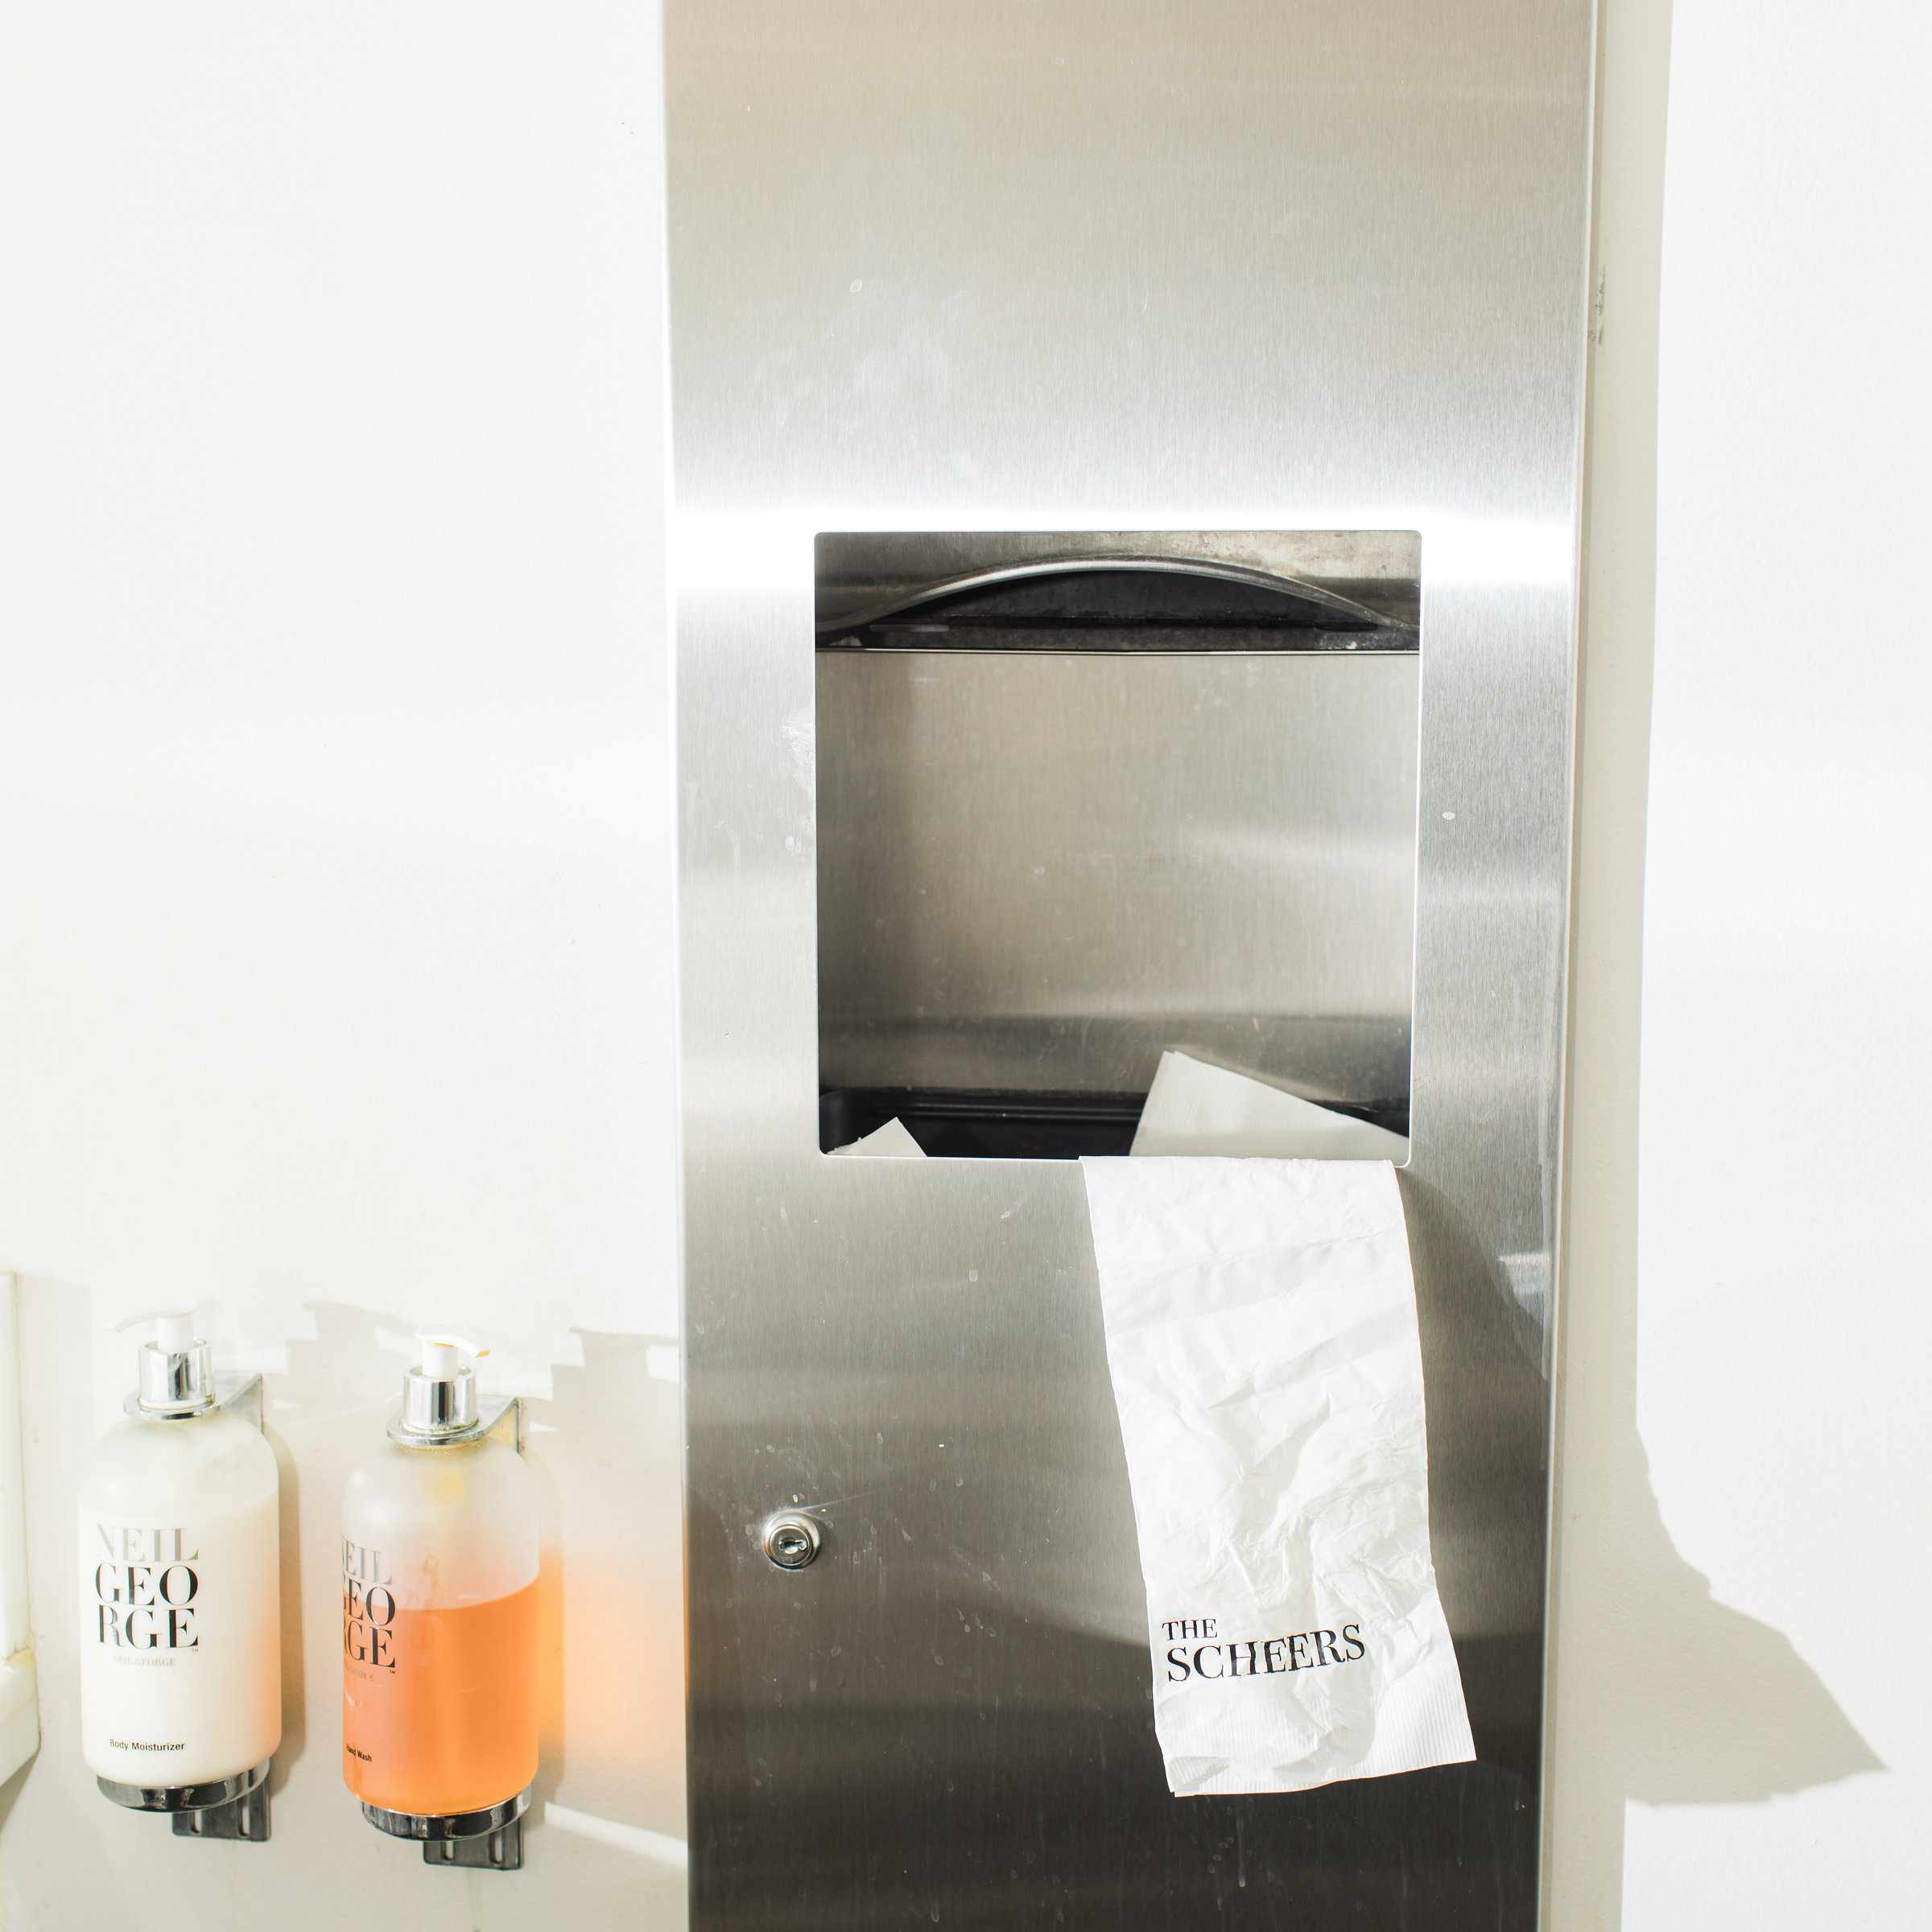 <p>personalized hand towels</p><br><br>